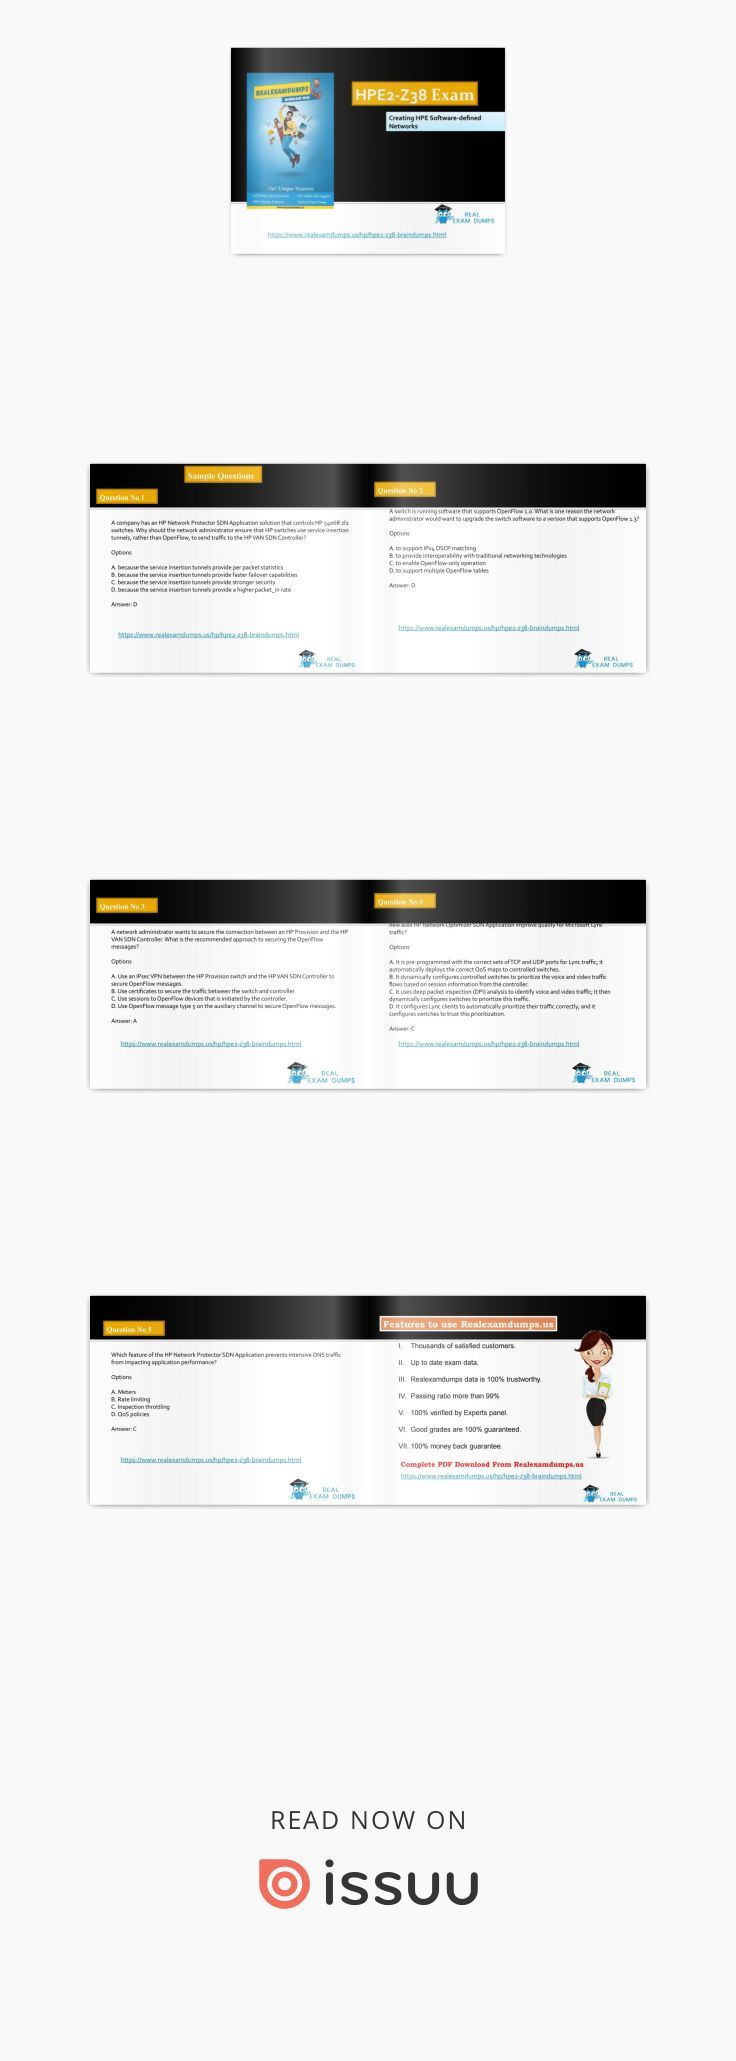 HPE2-Z38 Braindumps | Get HPE2-Z38 Dumps PDF - HPE2-Z38 Study Material | RealExamDumps  If you want to get certified in Creating HPE Software-defined Networks but can't find the right study material then join us now and Download full Verified Creating HPE Software-defined Networks study material from RealExamDumps.us and pass your PE2-Z38 exam in first attempt. If you really want to prepare your exam in one day then you should need to prepare your exam with best study material…